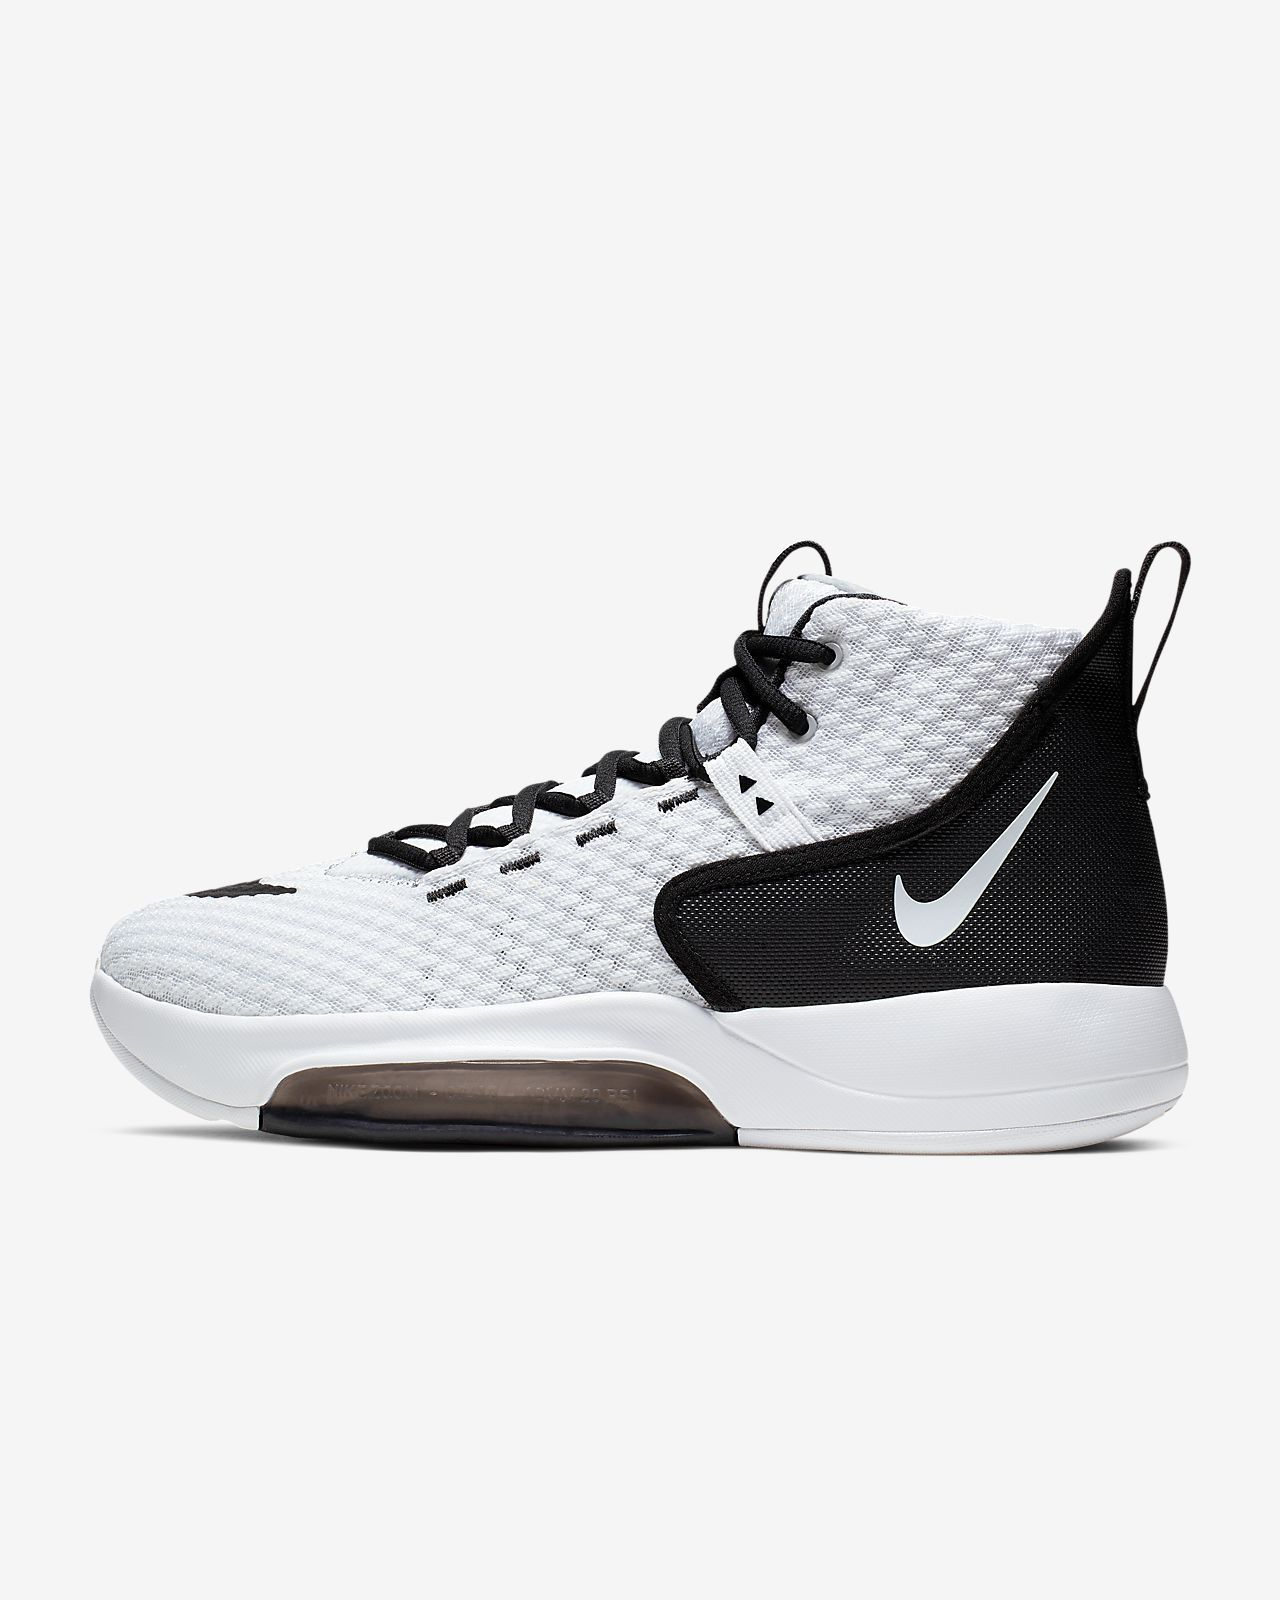 Nike Zoom Rize Team Basketball Shoe Nike Com In 2020 Jordan Shoes Retro Nike Basketball Shoes Shoes